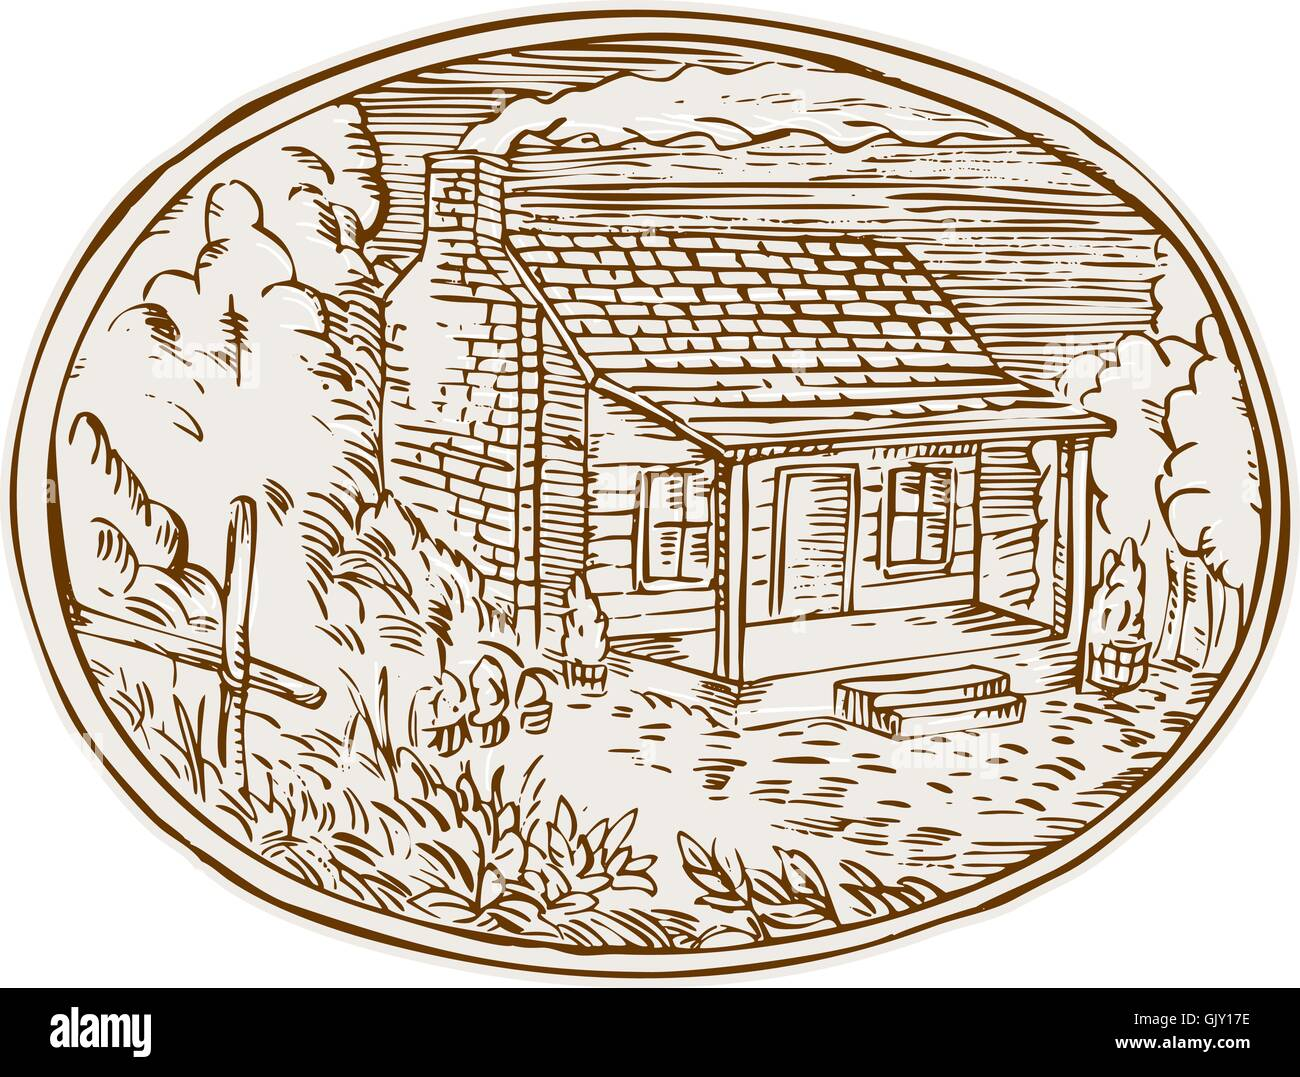 Log Cabin Farm House Oval Etching - Stock Vector